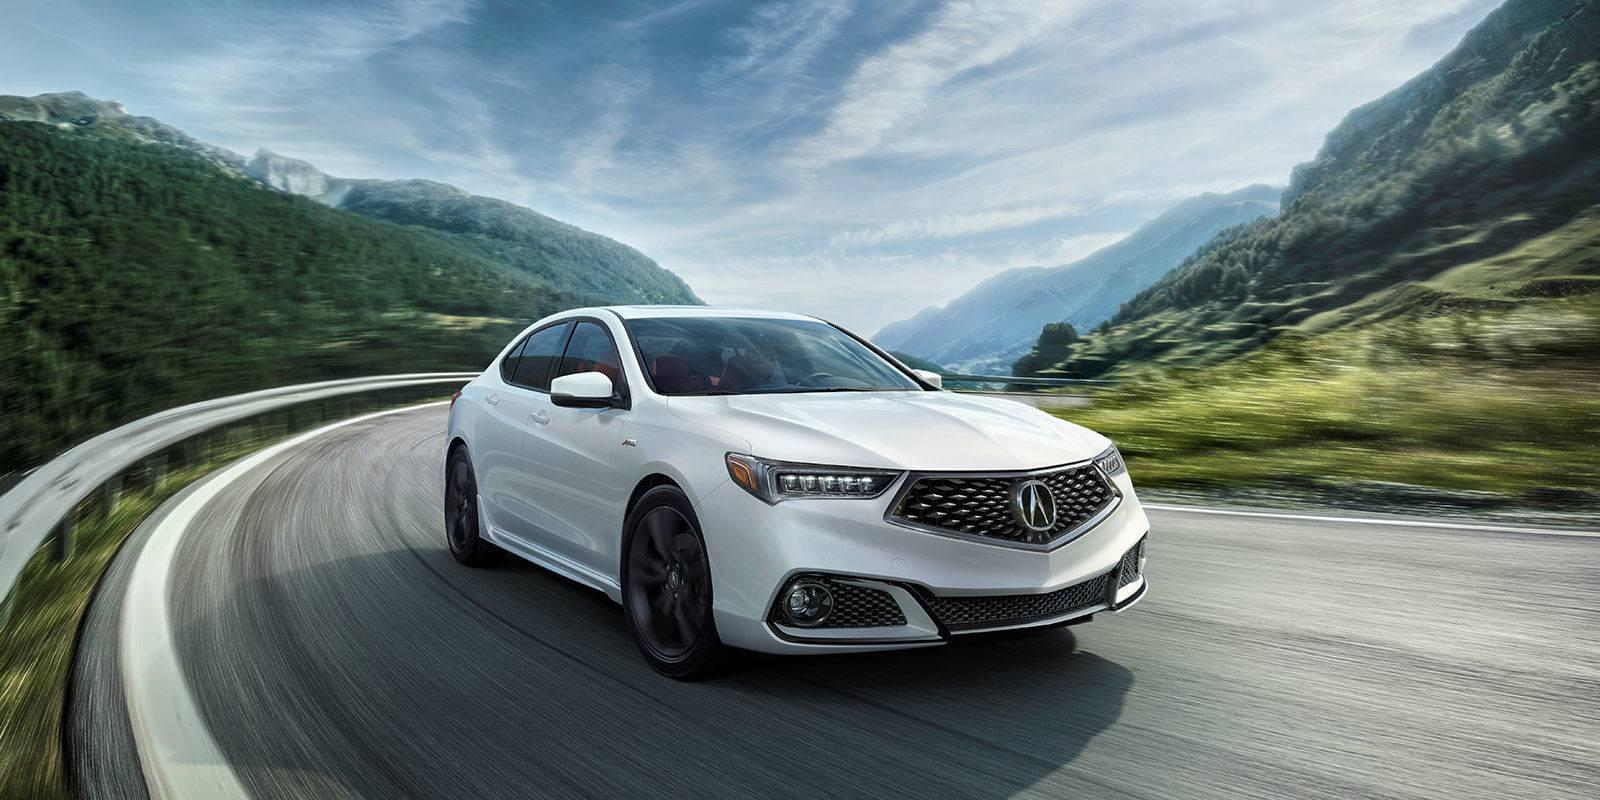 2018 Acura TLX: 5 Best Changes in the Refreshed Sedan